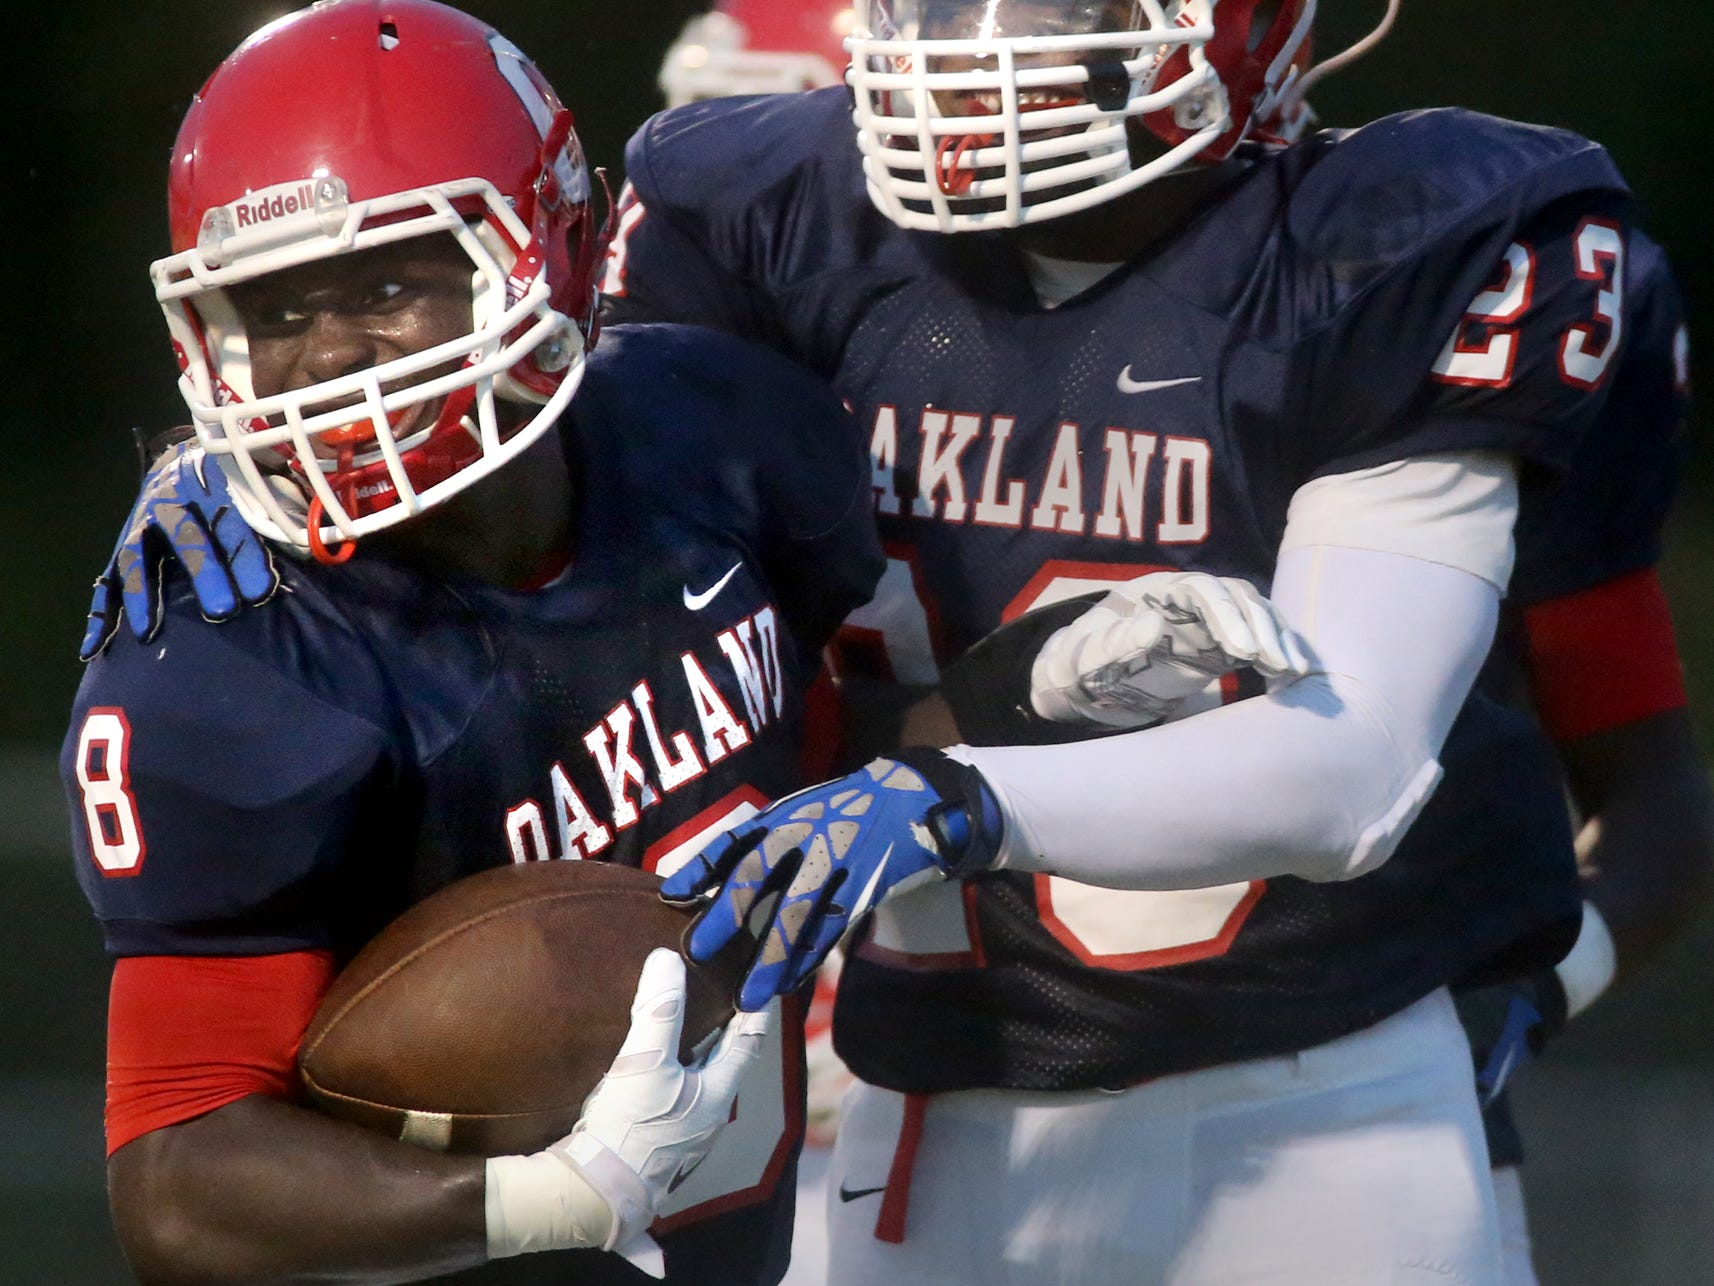 Oakland's George Gbesee is congratulated by teammate Turrel Ward after Gbeseea scored a touchdown from a recovered fumble in the first half of the game against White Station at Oakland, on Friday, August 2, 2014.